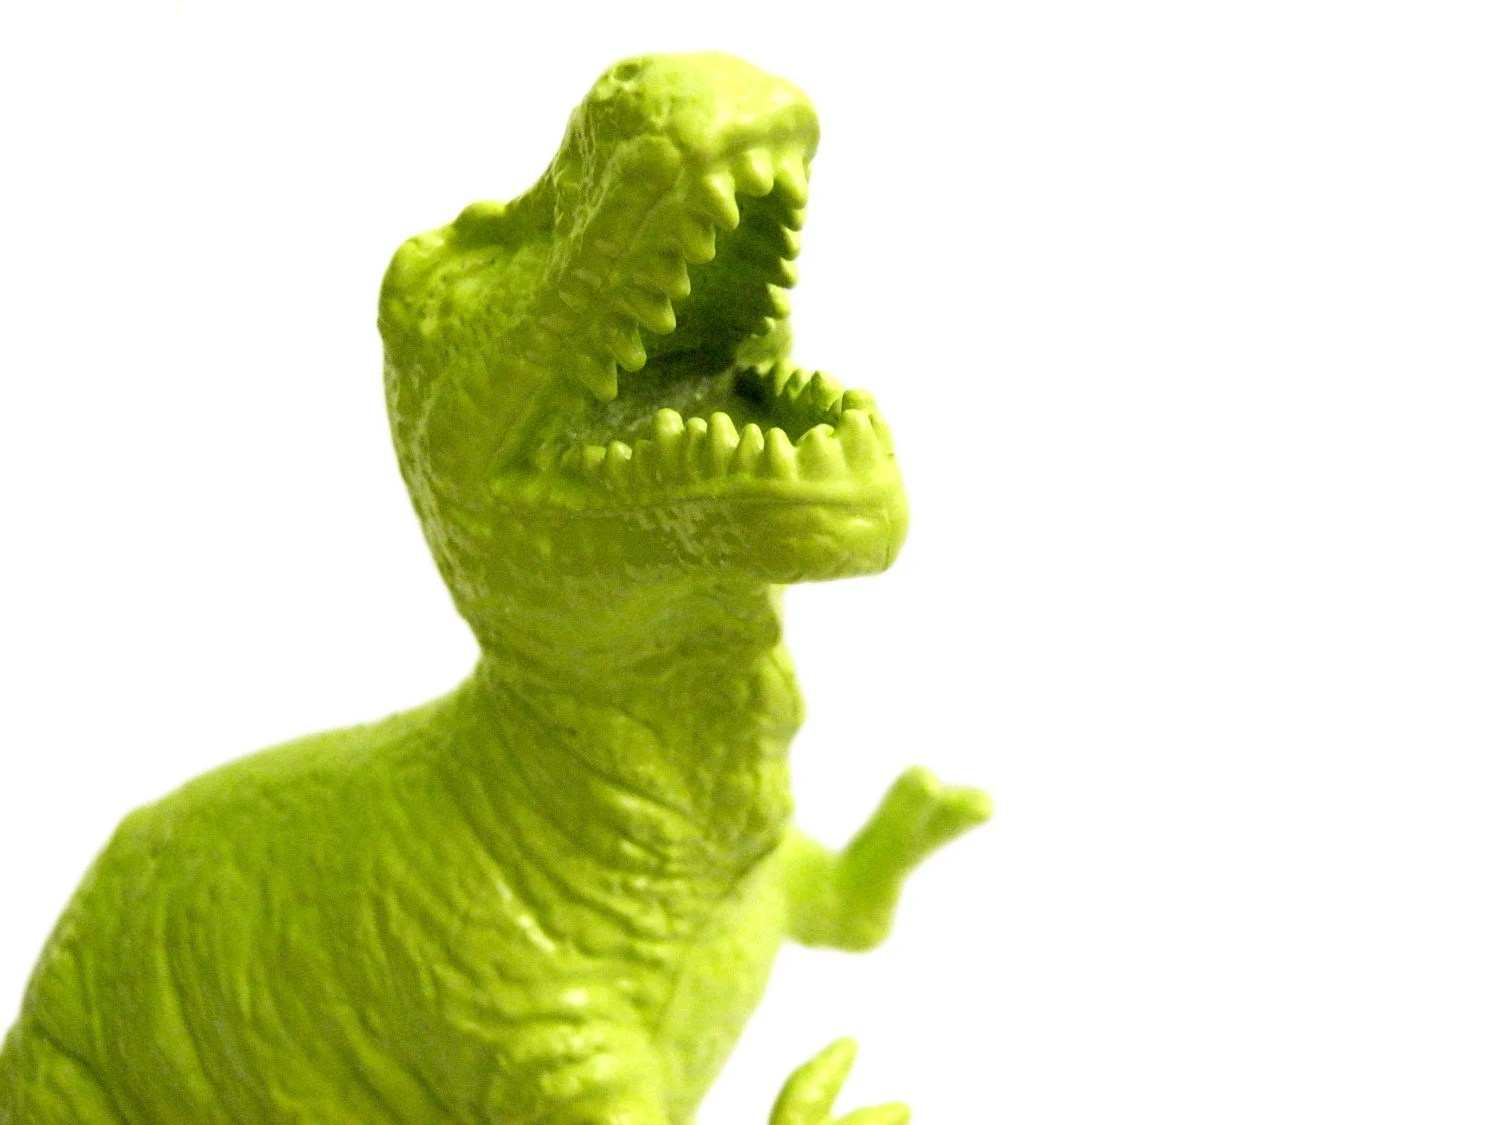 Lime Green T-Rex, //PRICE REDUCED// Upcycled Repurposed Dinosaur Toy, Dinosaur Decor - bellonart